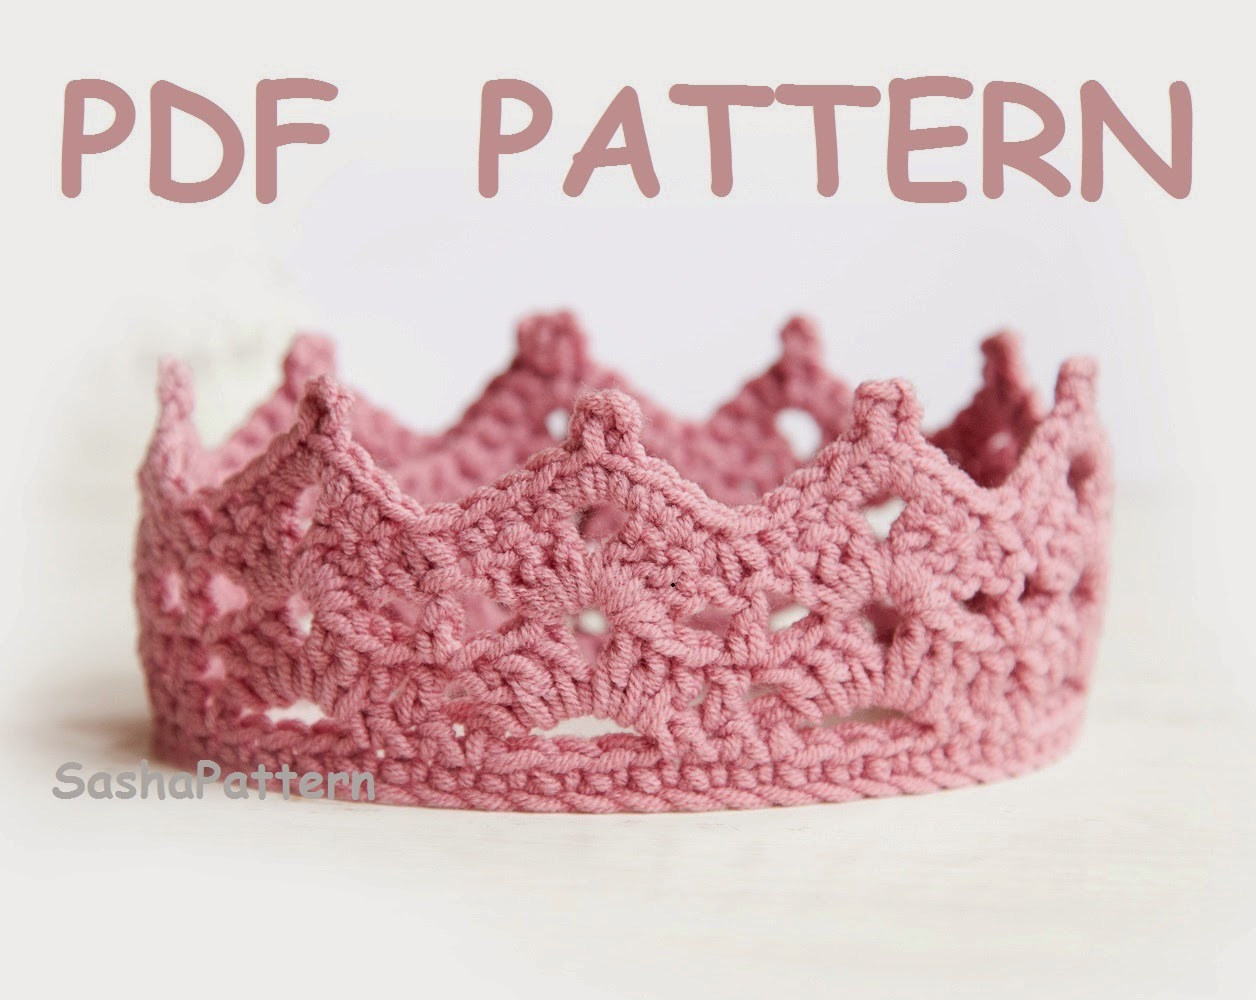 Crochet Baby Crown Pattern, Princess or Prince Crown Baby Tiara in PDF